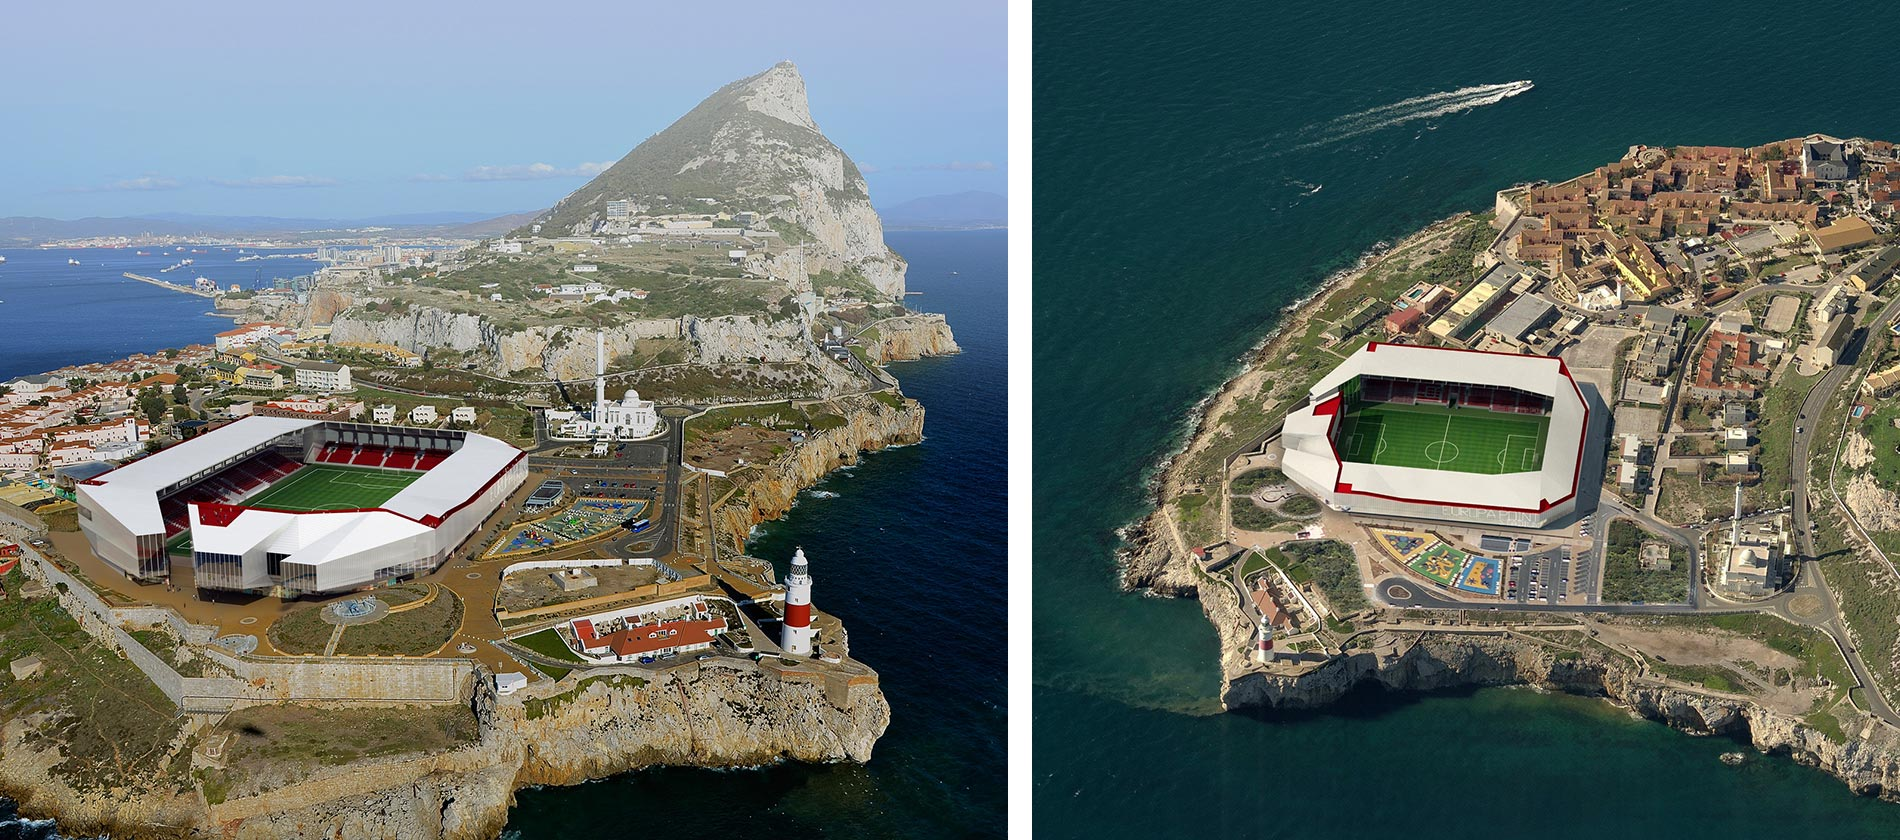 Rockin' views of Morocco - aeriel view of planned Europa Point Stadium